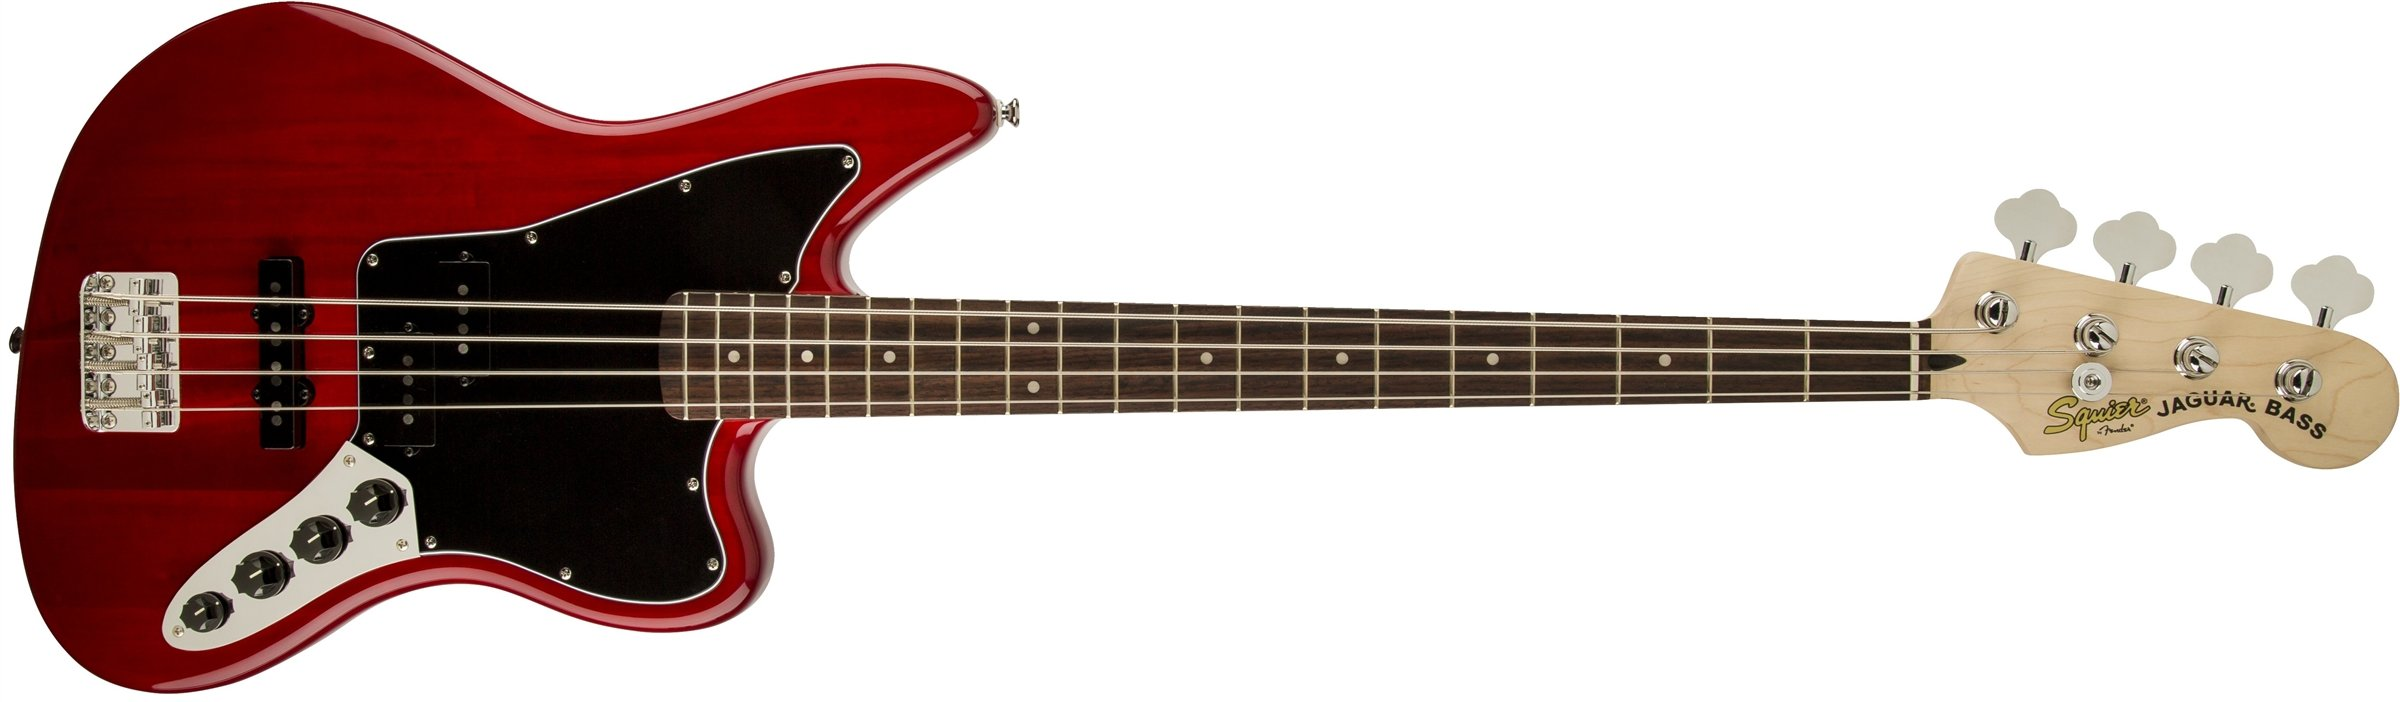 Squier by Fender Vintage Modified Jaguar Beginner Short Scale Electric Bass Guitar - Crimson Red Transparent by Fender (Image #1)